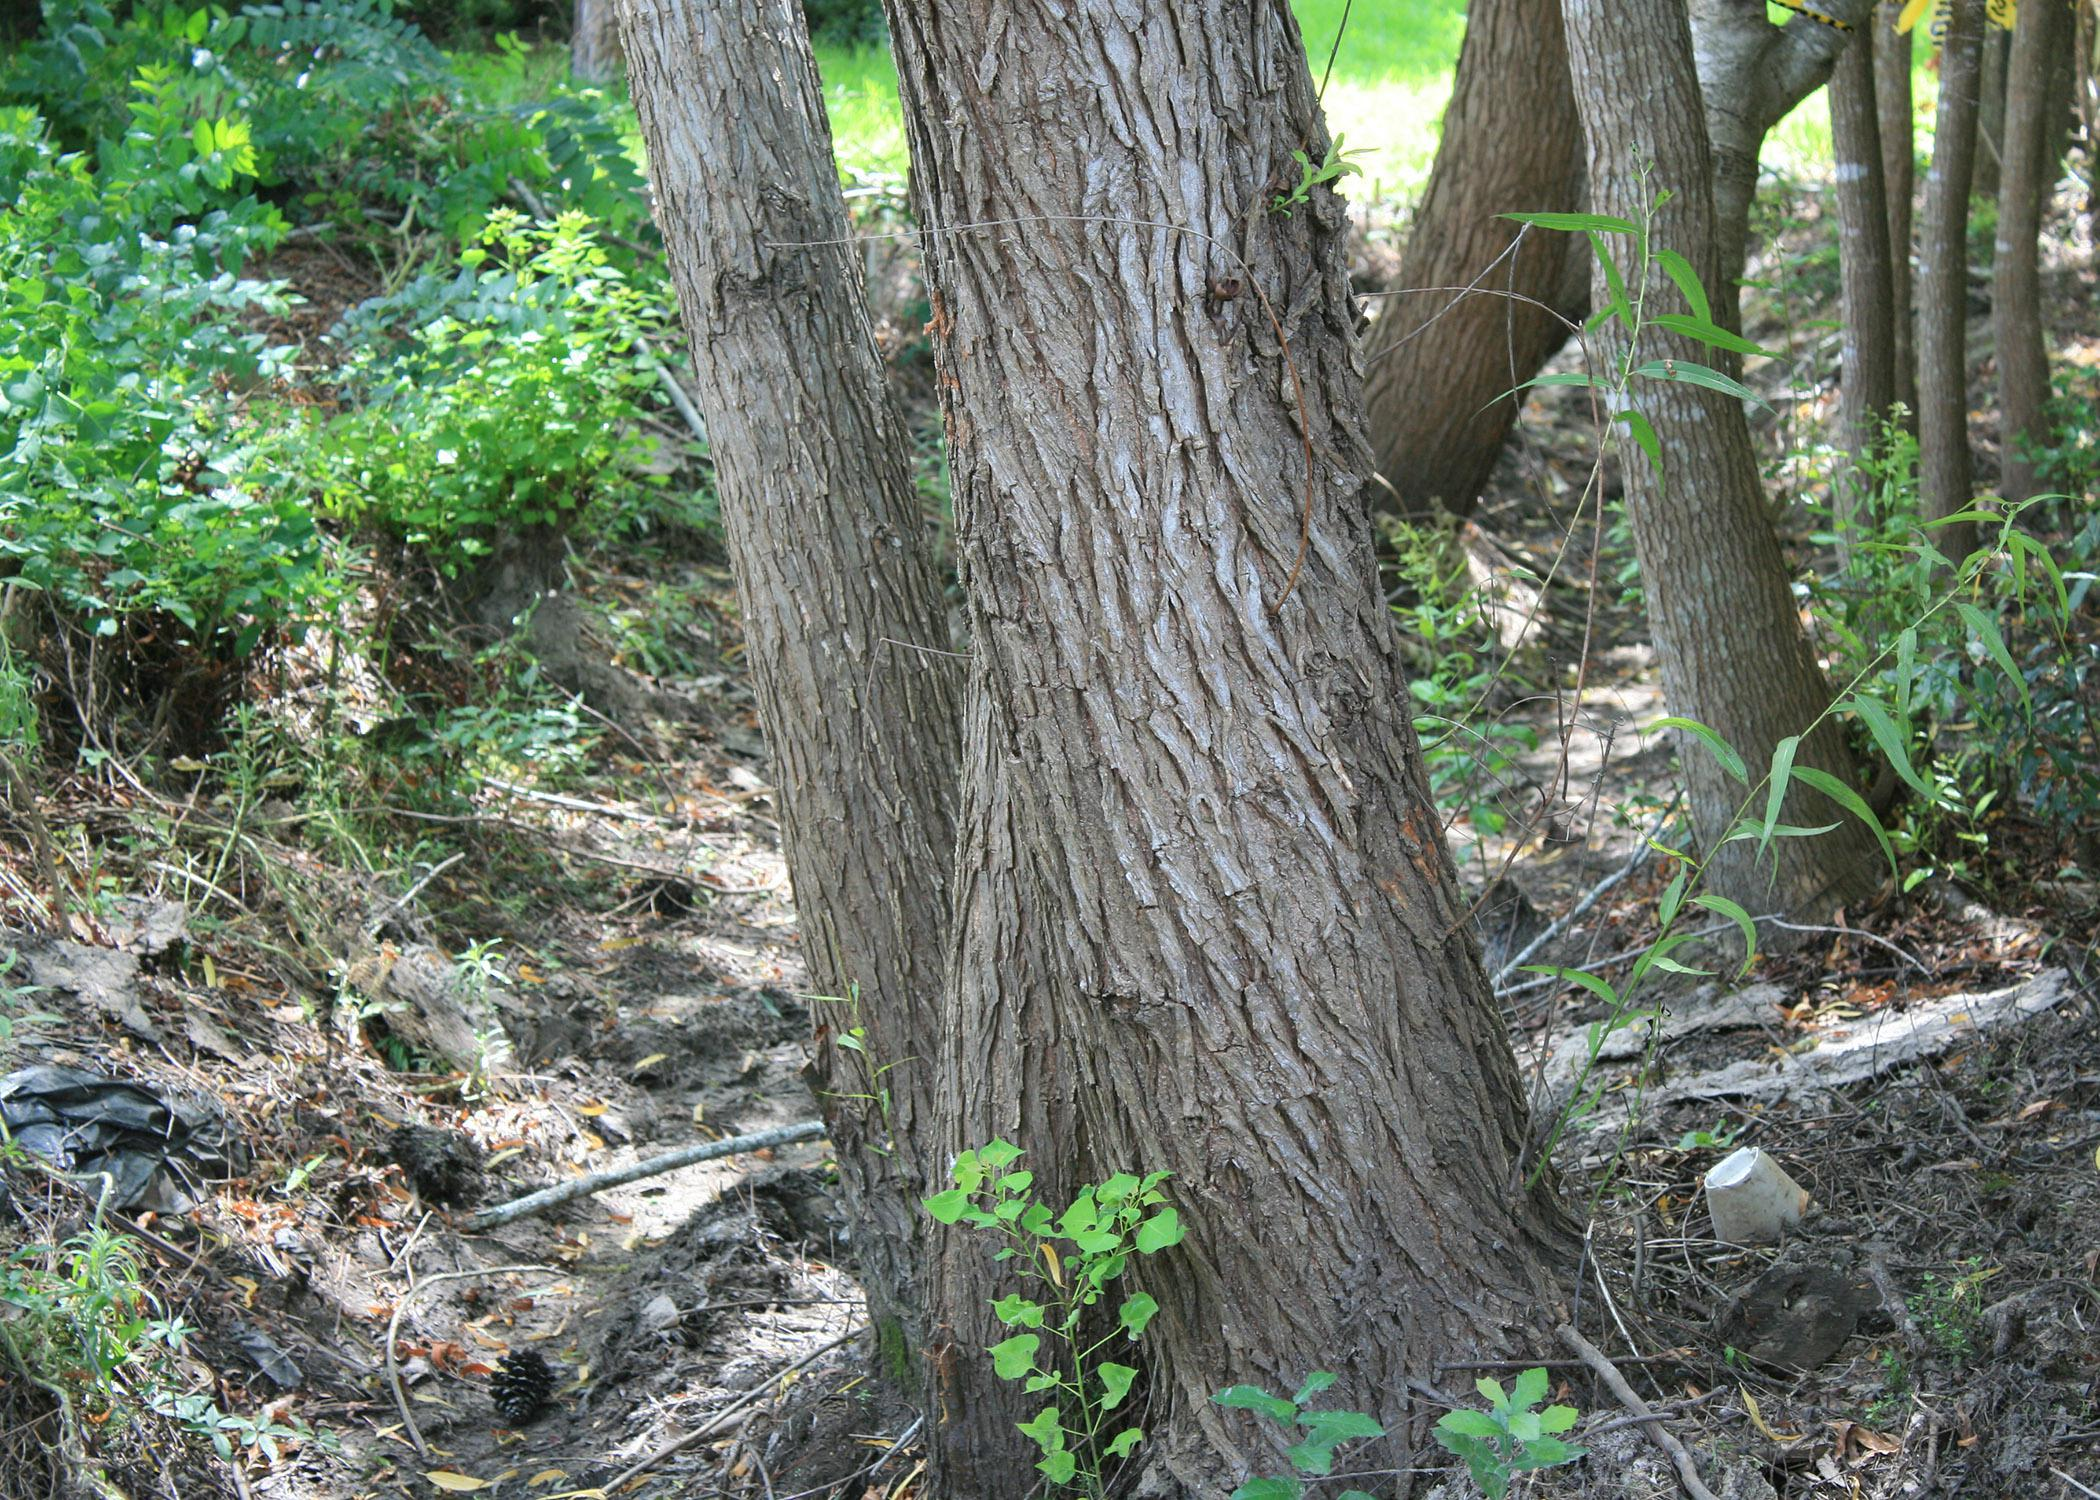 This ditch is an extreme example of a drainage easement that has been neglected, allowing small trees to become large problems. (Photo by MSU Extension Service/Gary Bachman)